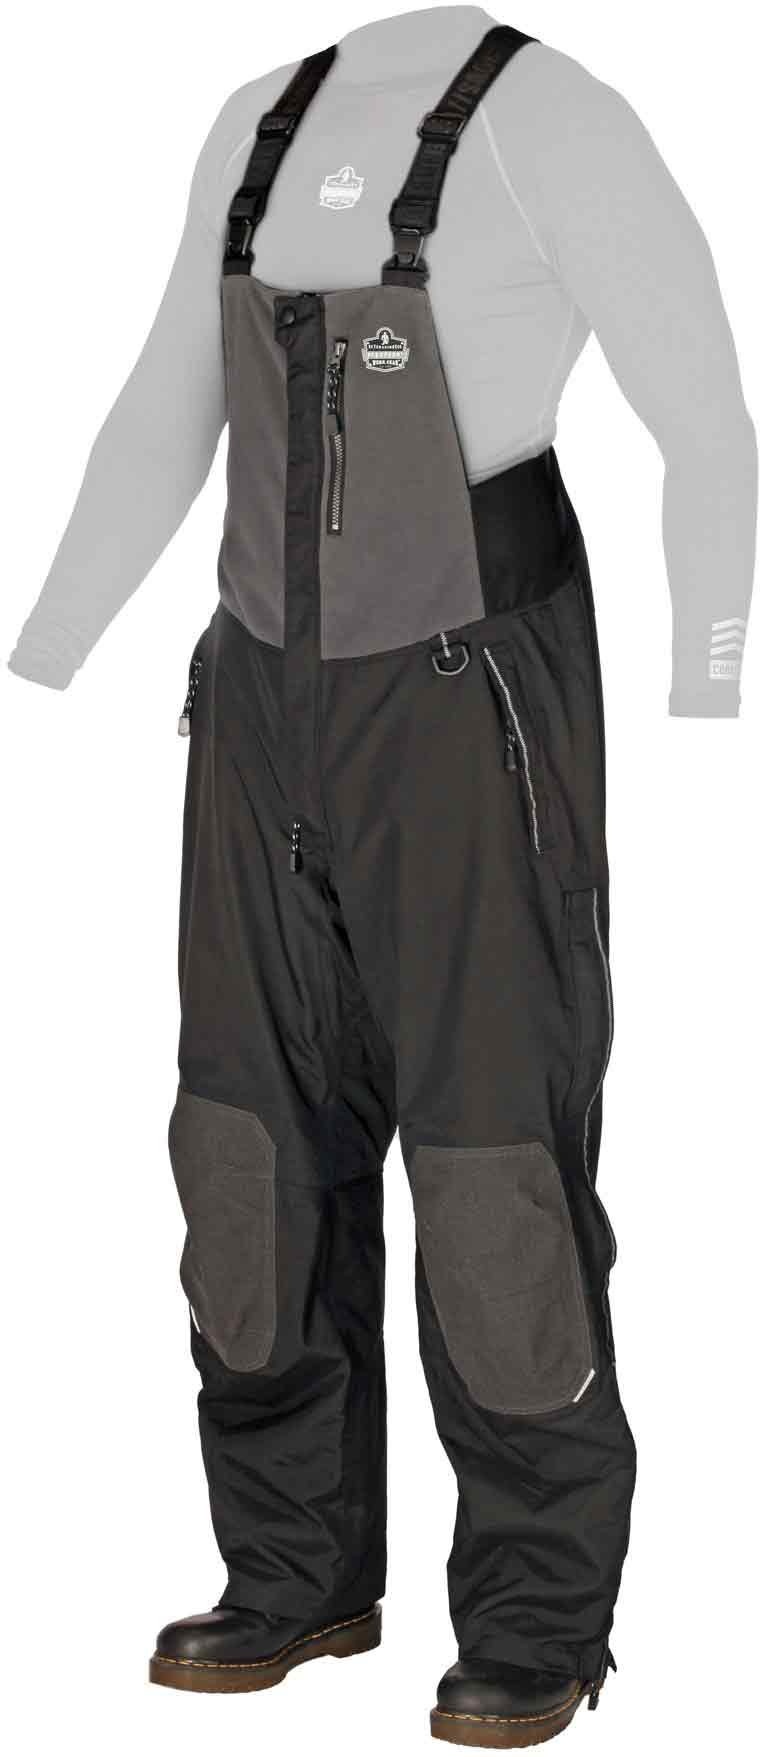 N-Ferno 6470 Men's Outer Layer Thermal Bib Overalls with Removable Knee/Shin Pads, Large